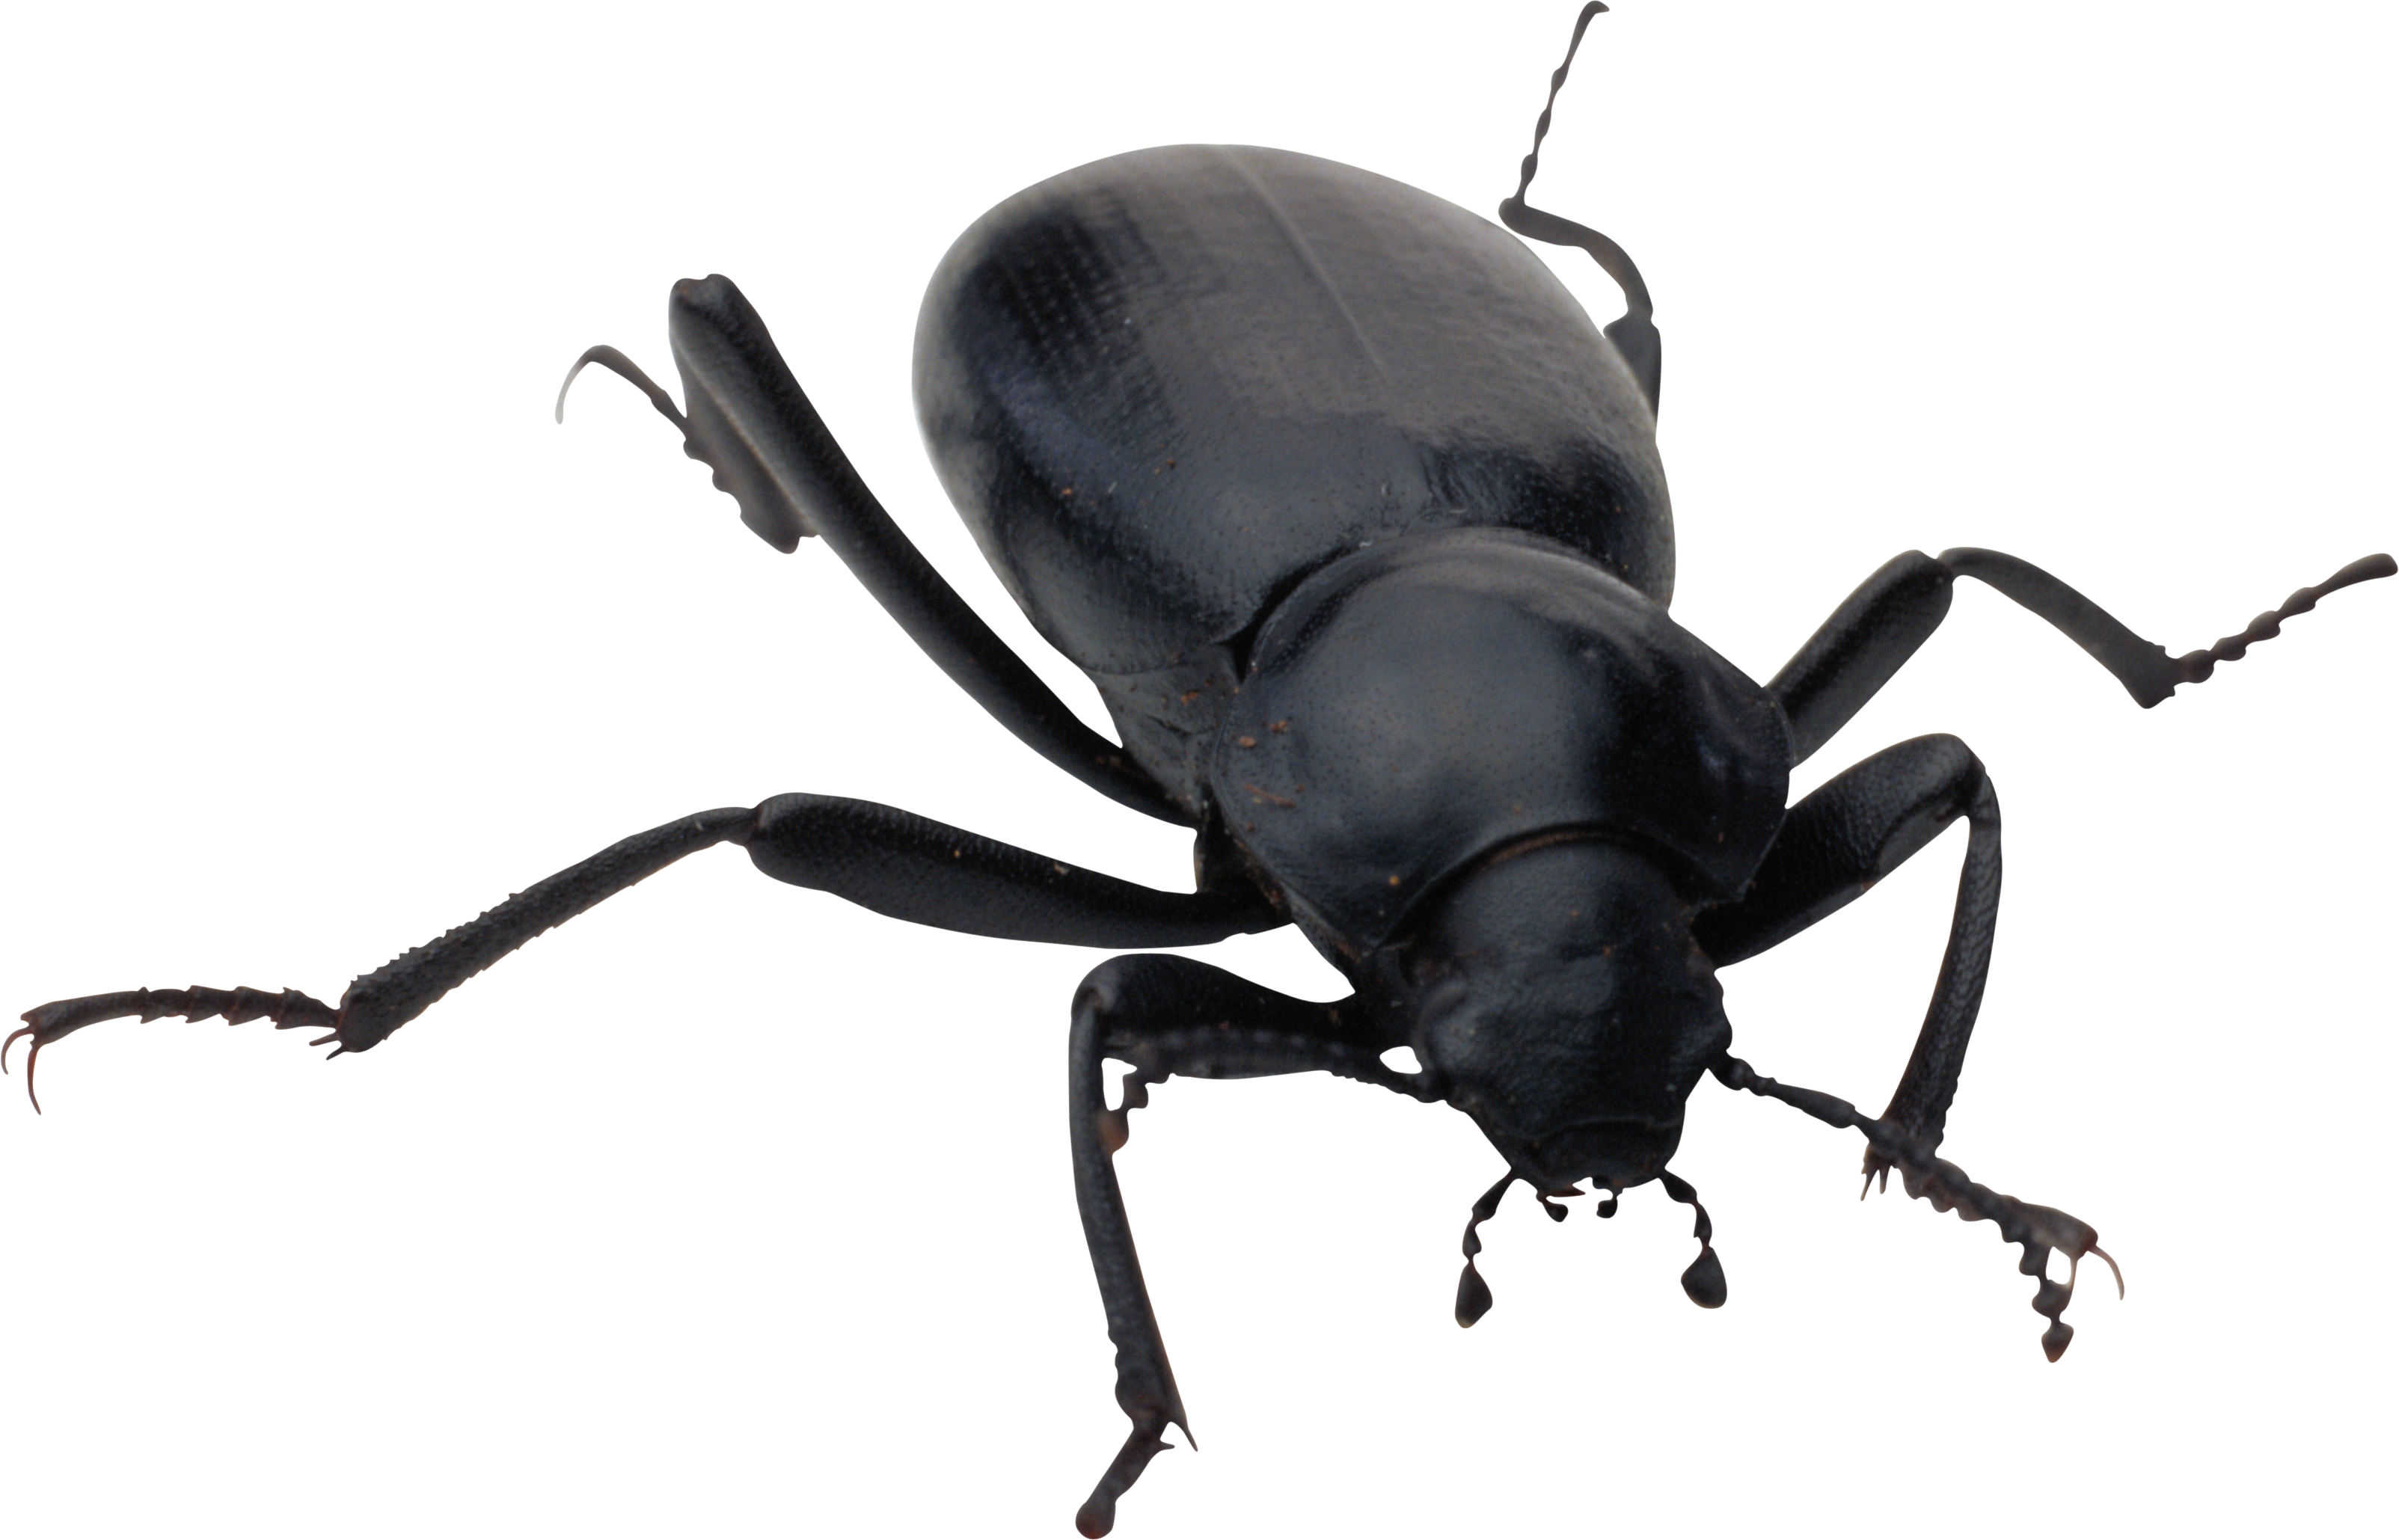 clipart black and white library Beetle clipart transparent background. Bugs icon web icons.